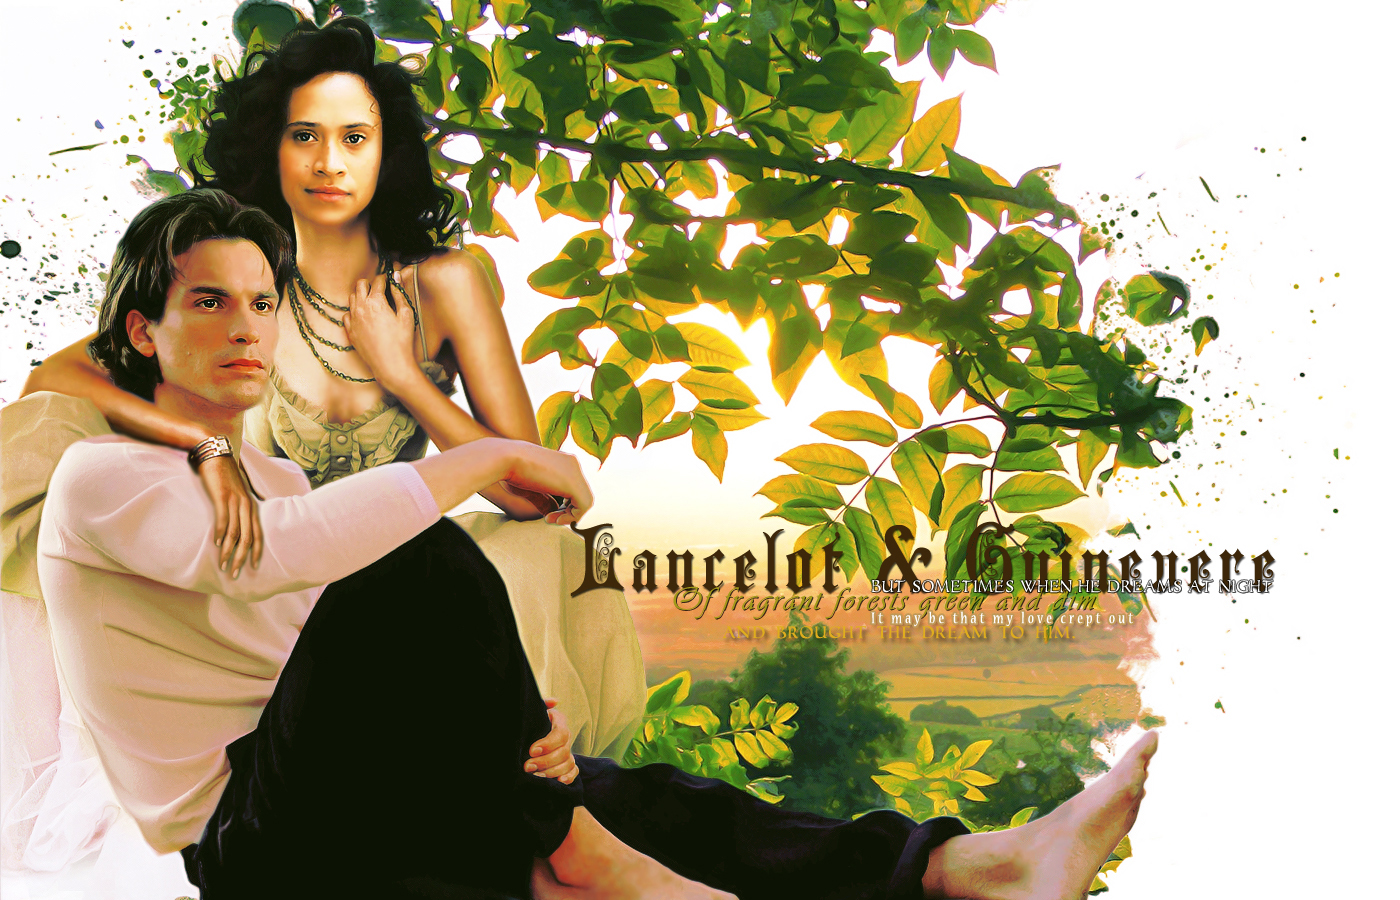 [Image: Lancelot_and_Guinevere_by_magic_ban.jpg]